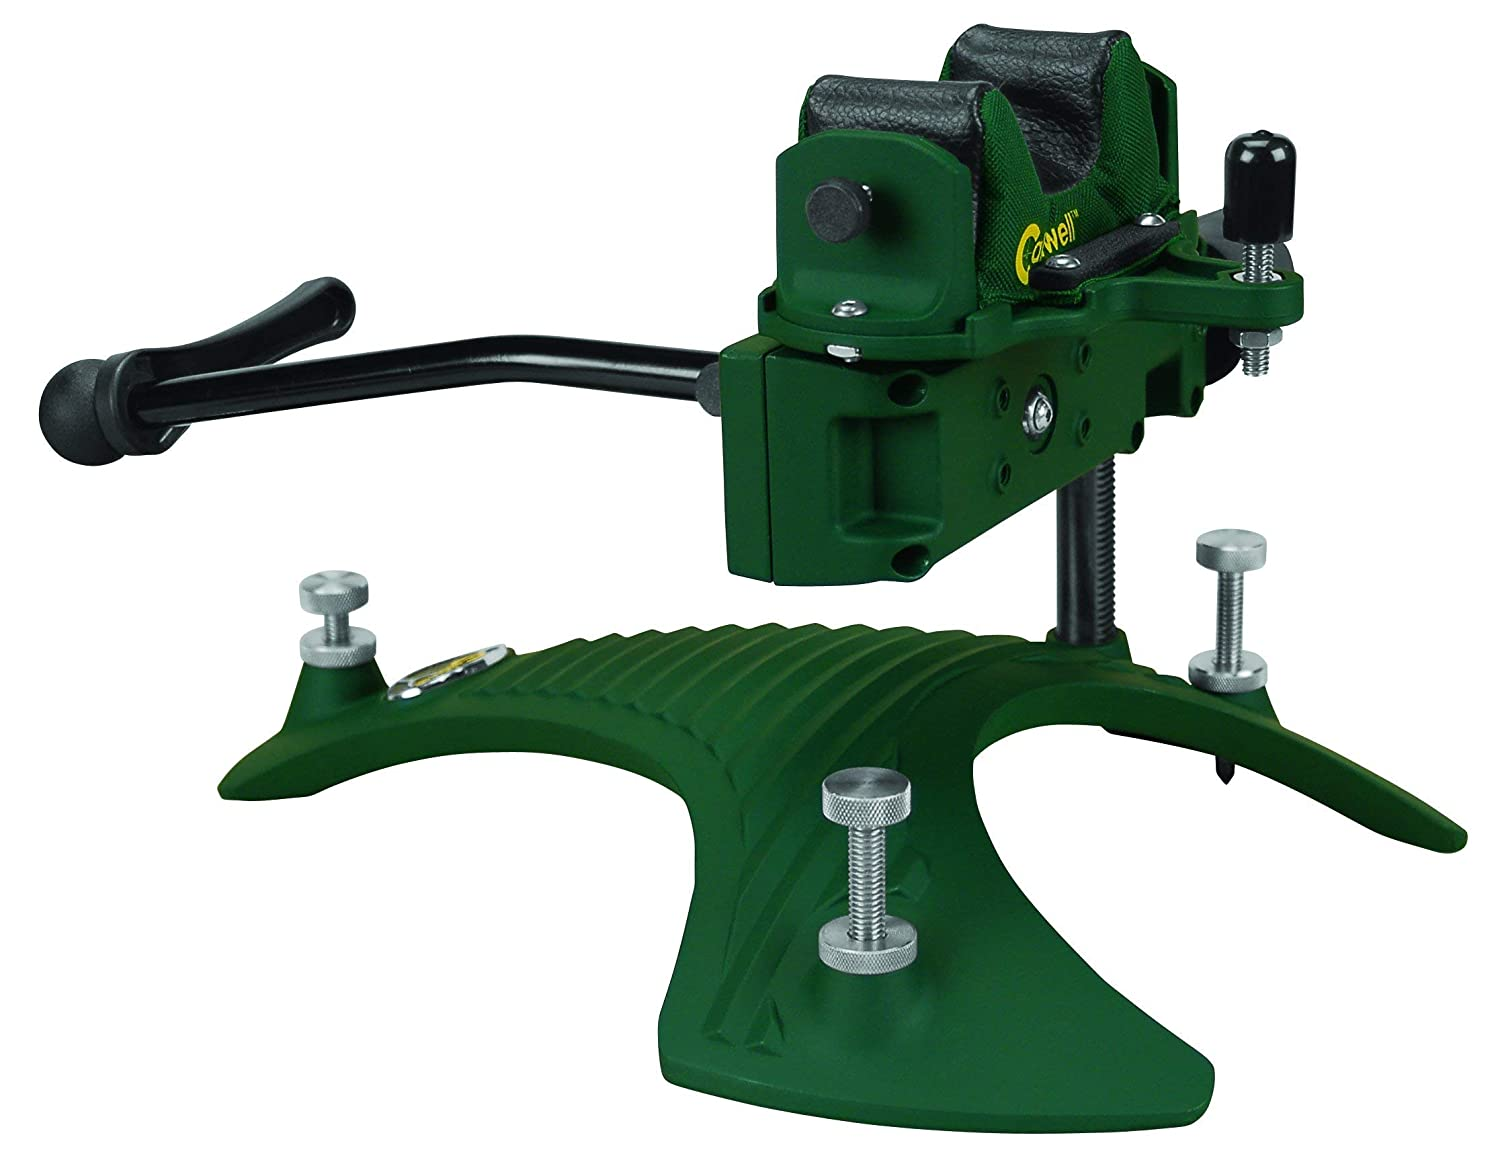 Renewed Caldwell Fire Control Rest Adjustable Ambidextrous Rifle Shooting Rest for Outdoor Range